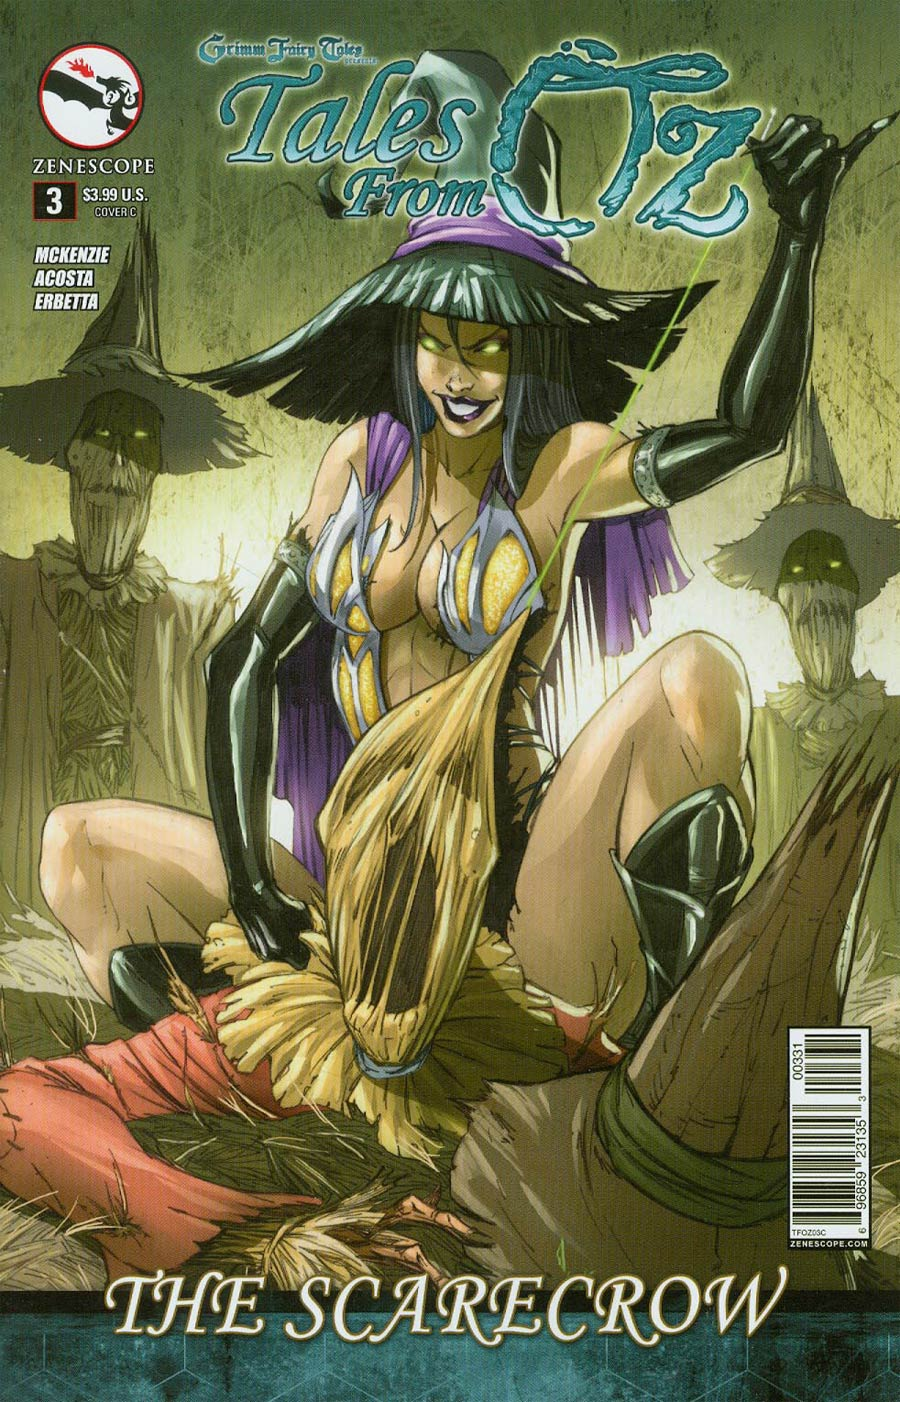 Grimm Fairy Tales Presents Tales From Oz #3 Scarecrow Cover C Pasquale Qualano